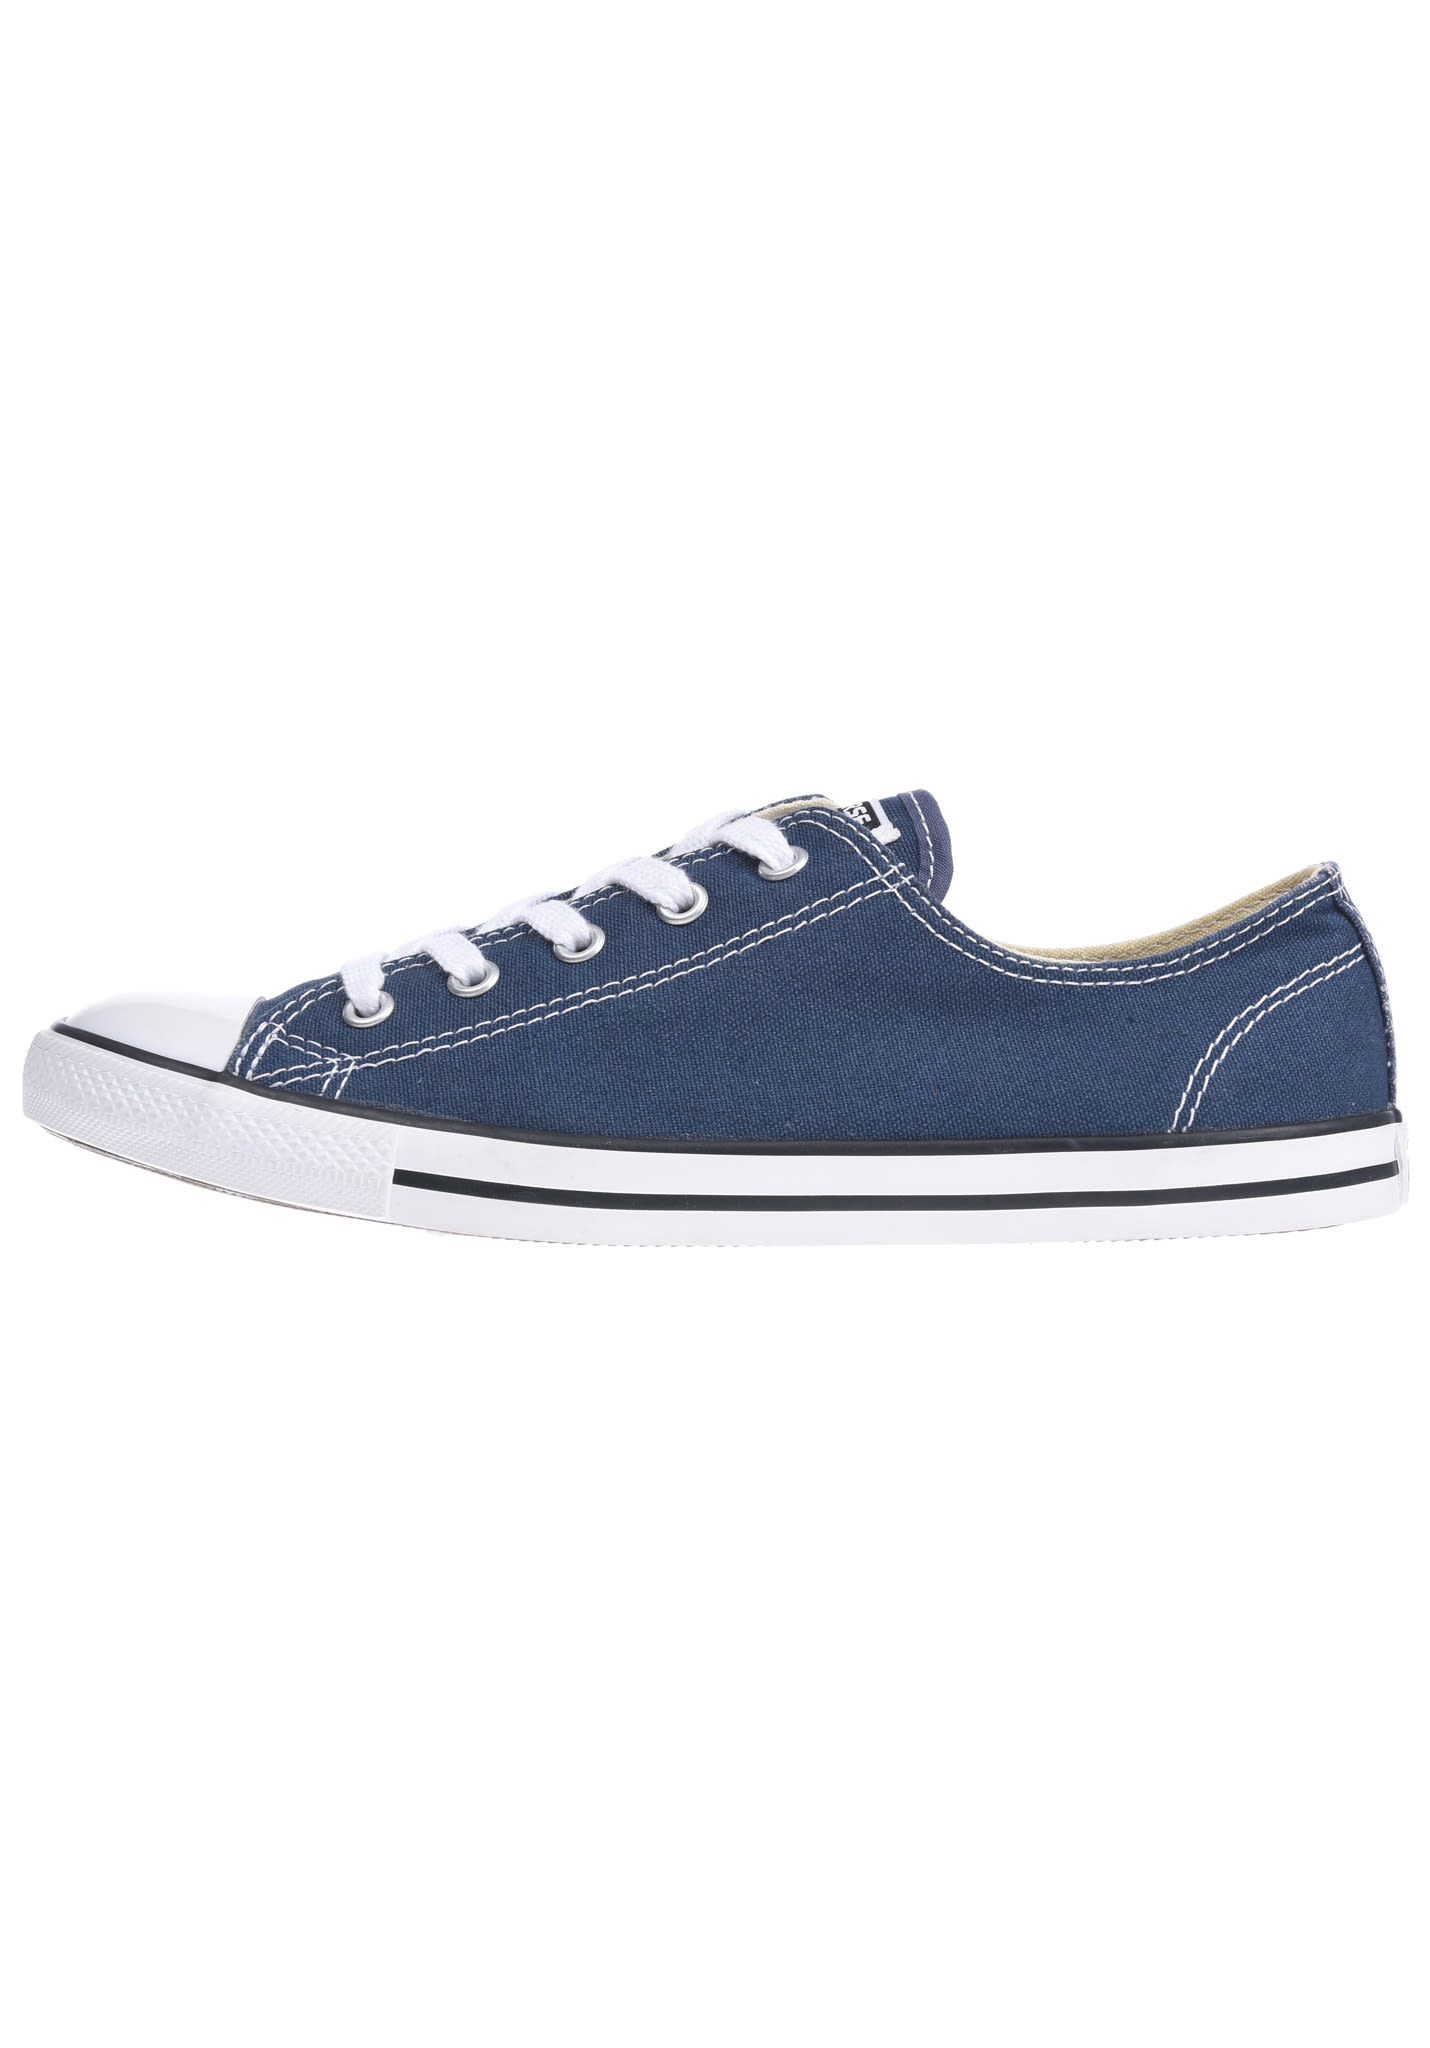 66ed0a5dc4e2 Converse Chuck Taylor All Star Dainty Ox - Sneakers for Women - Blue -  Planet Sports